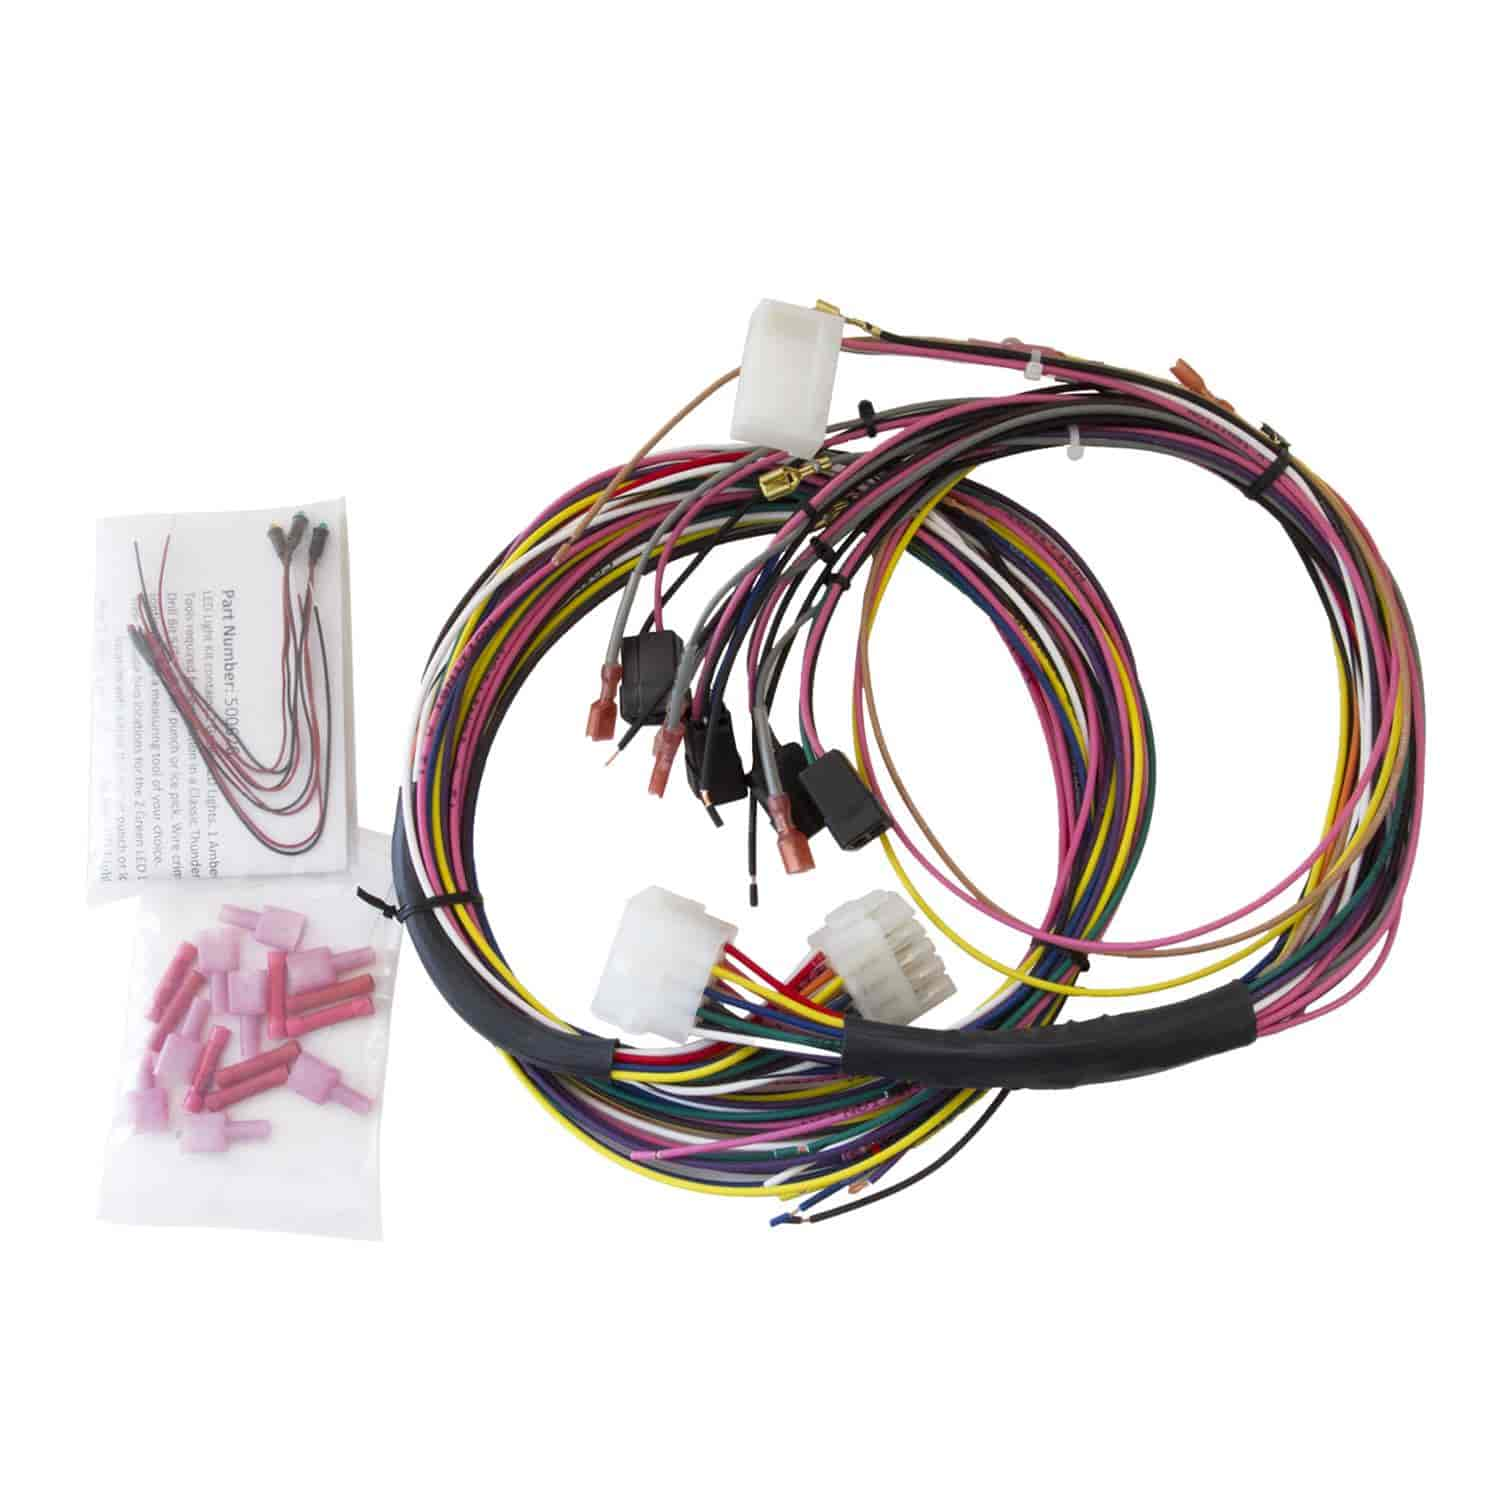 105 2198 auto meter 2198 replacement wiring harness universal jegs VW Wiring Harness Kits at n-0.co